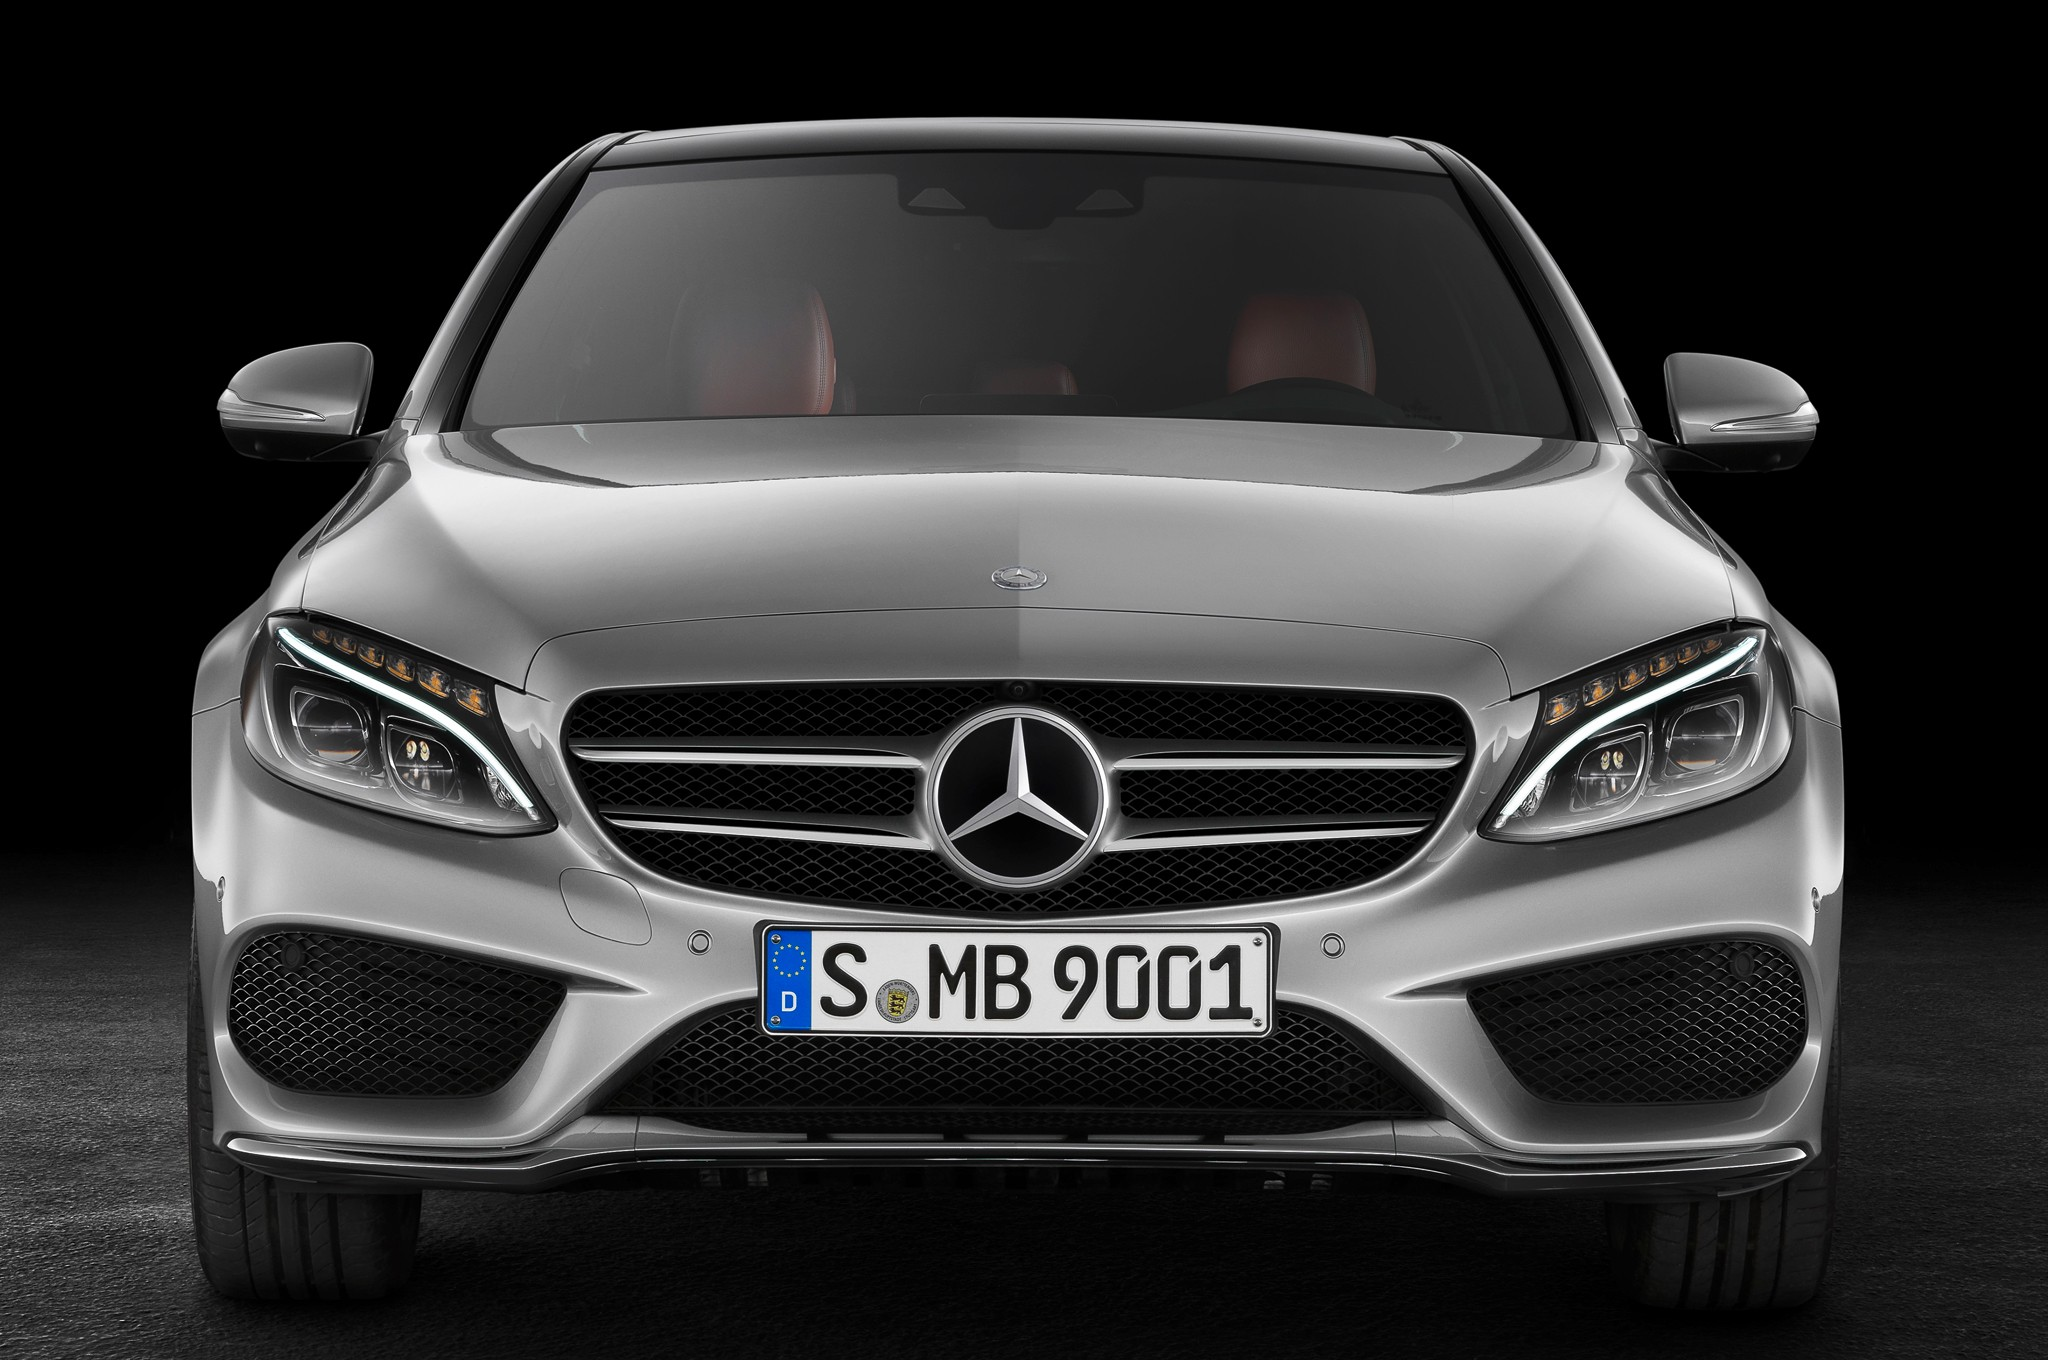 mercedes benz c class c220 cdi diesel launched price specs features. Black Bedroom Furniture Sets. Home Design Ideas